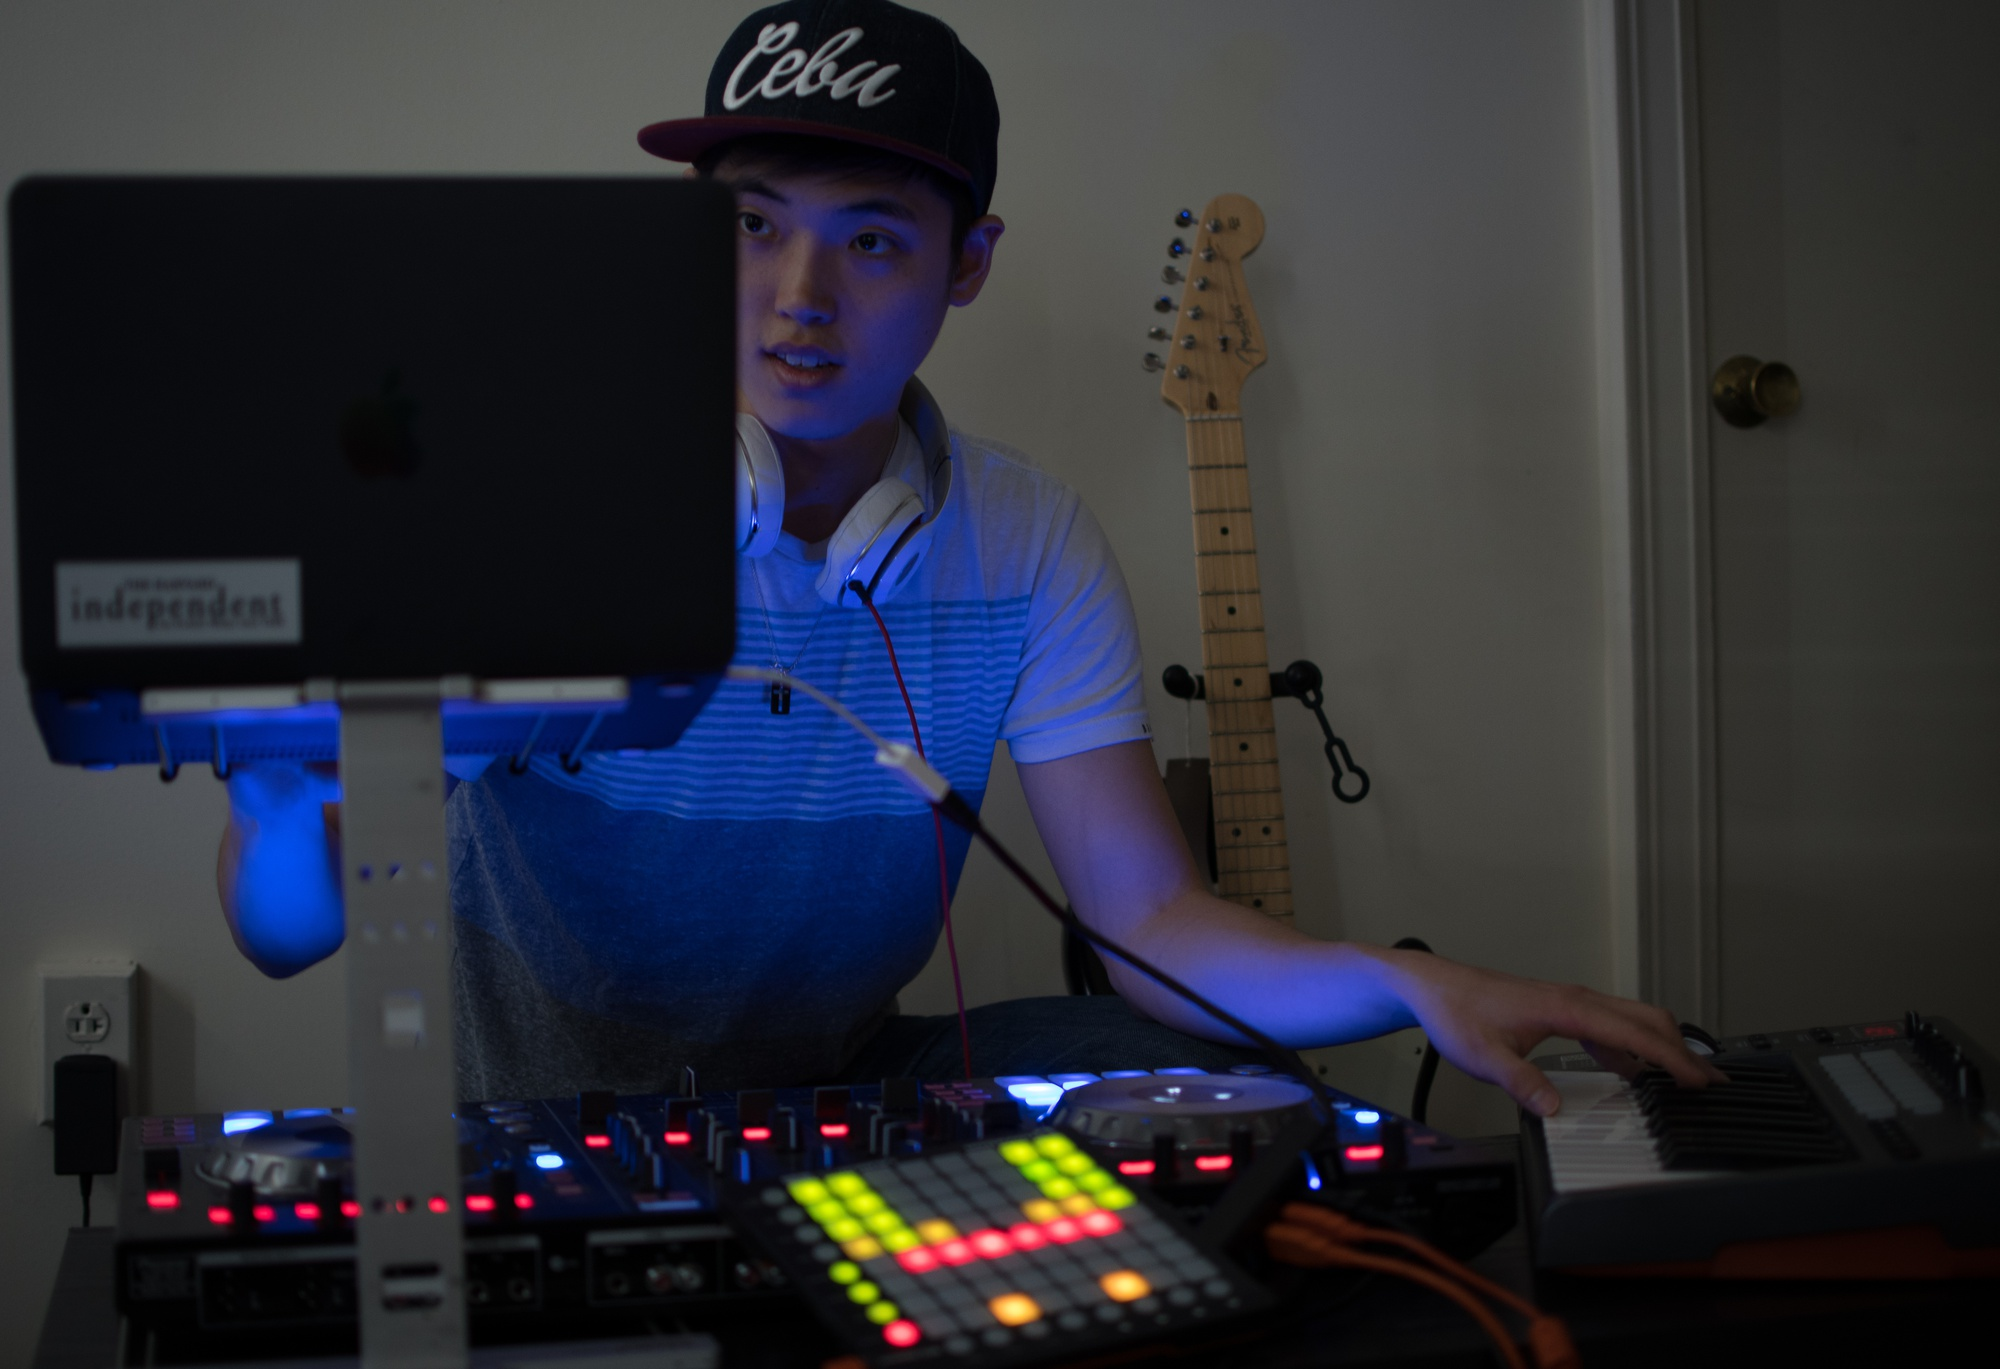 A native of the Philippines, Daniel Um '19—known as DJdUm— said he got his start DJing by creating remixes and covers of popular songs while he was in high school